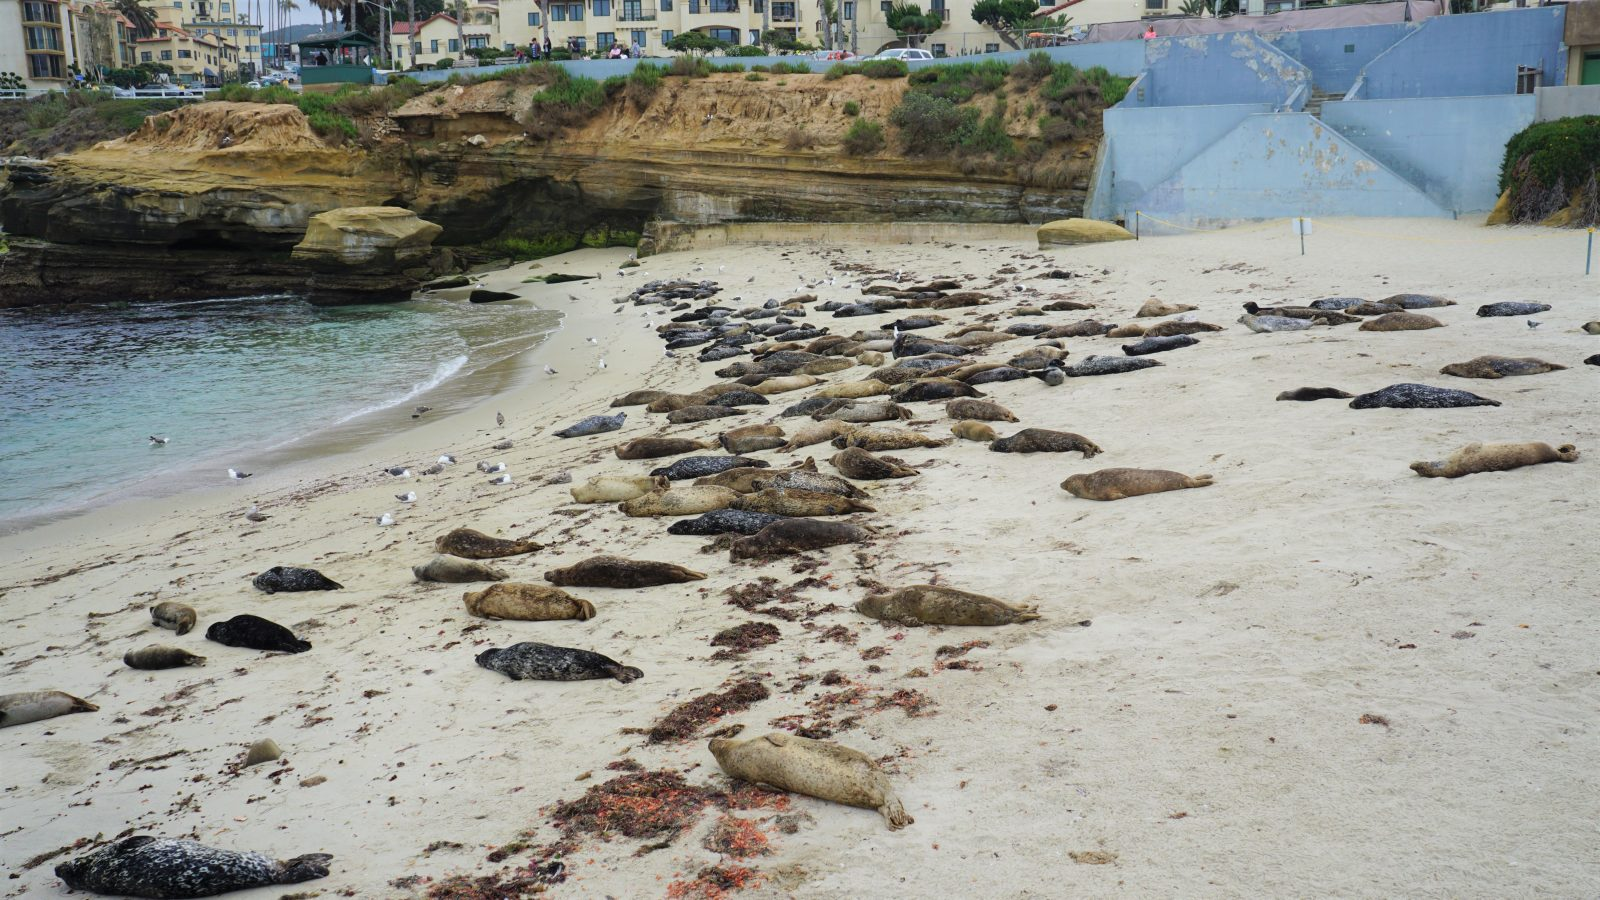 Fun things to do in La Jolla with kids: Adorable seals sunning themselves on the beach at the children's pool (La Jolla).=